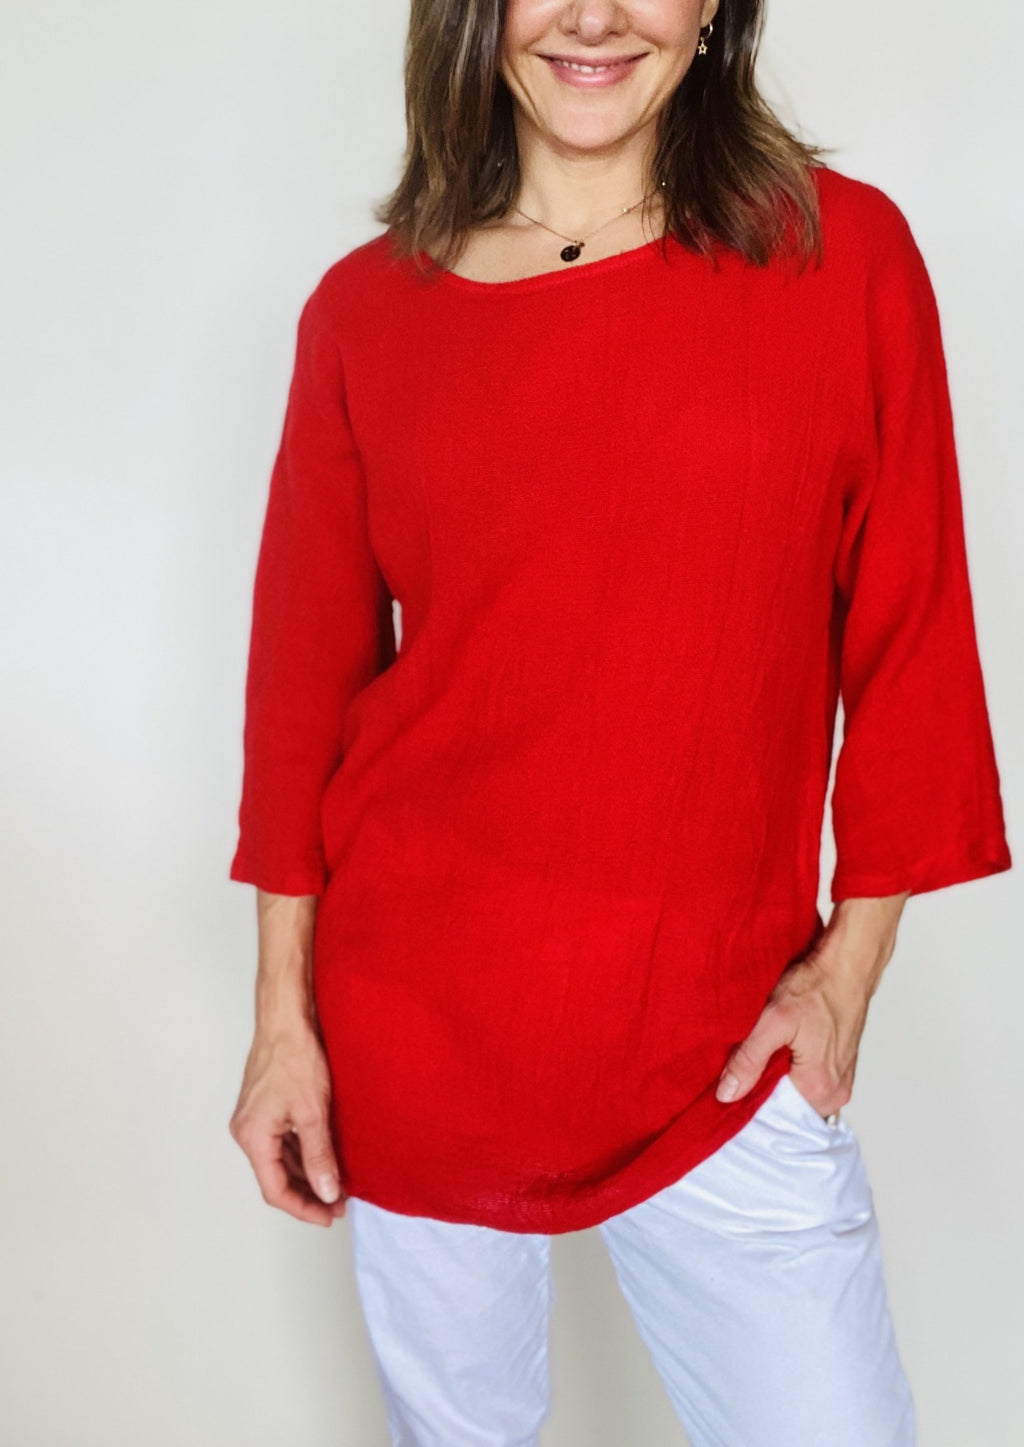 This casual long box top features Ridley's signature weave, scoop neck and 3/4 sleeves.  A warm pop of colour, this top looks great with fitted pants or jeans, and will help boost you mood on dreary days.  50/50 Linen/Cotton  Made in Italy